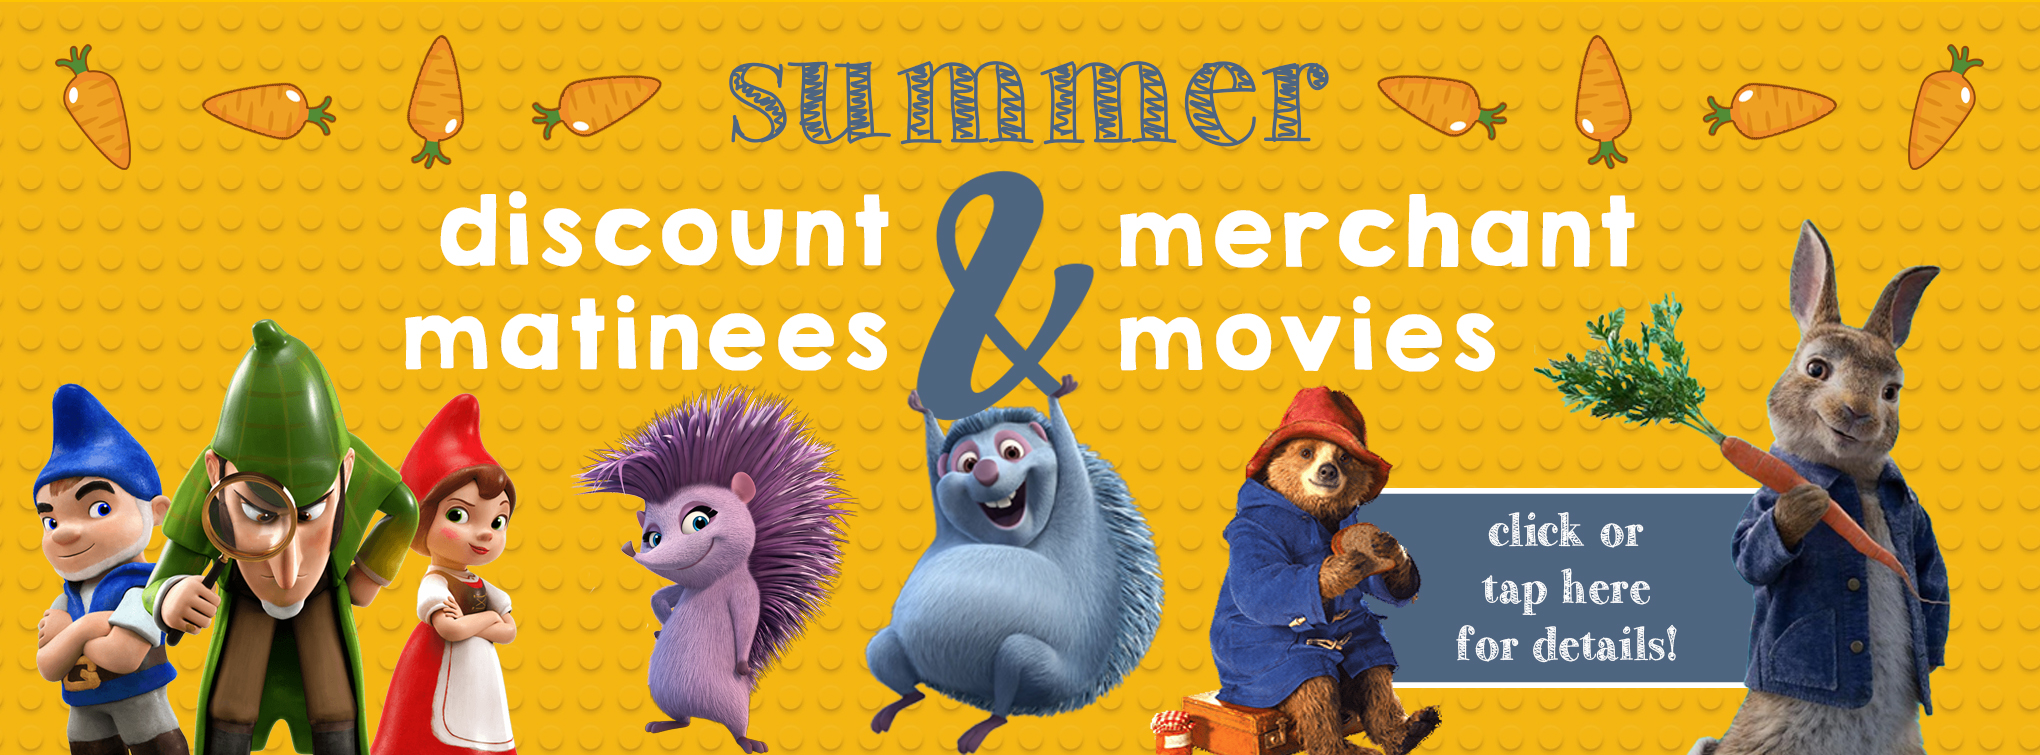 Slider image for Merchant Movies and Discount Matinees